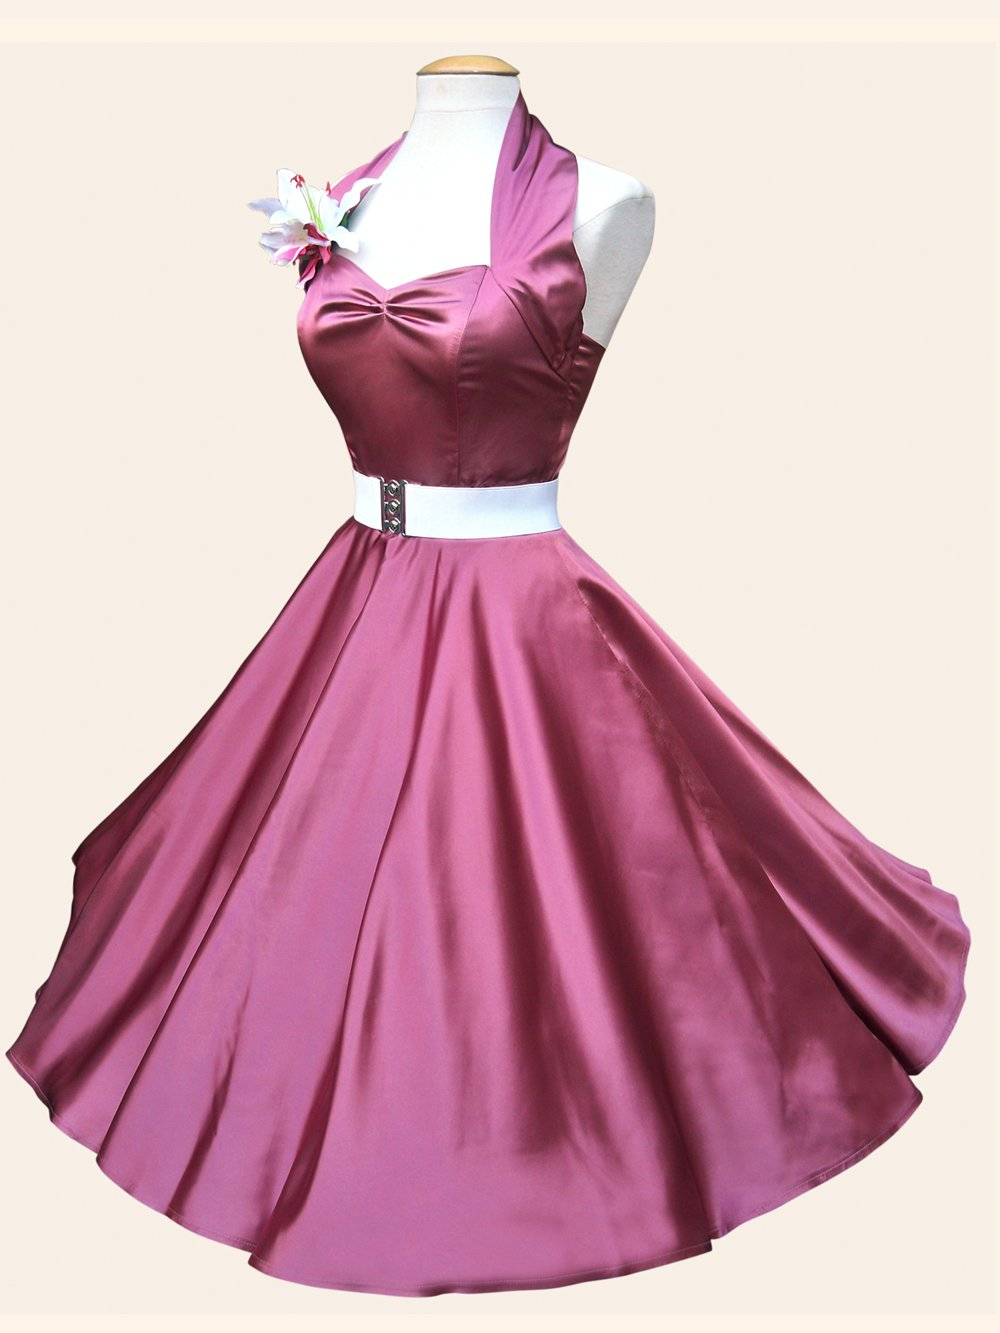 1950s halterneck dusky pink satin dress for Dusky pink wedding dress